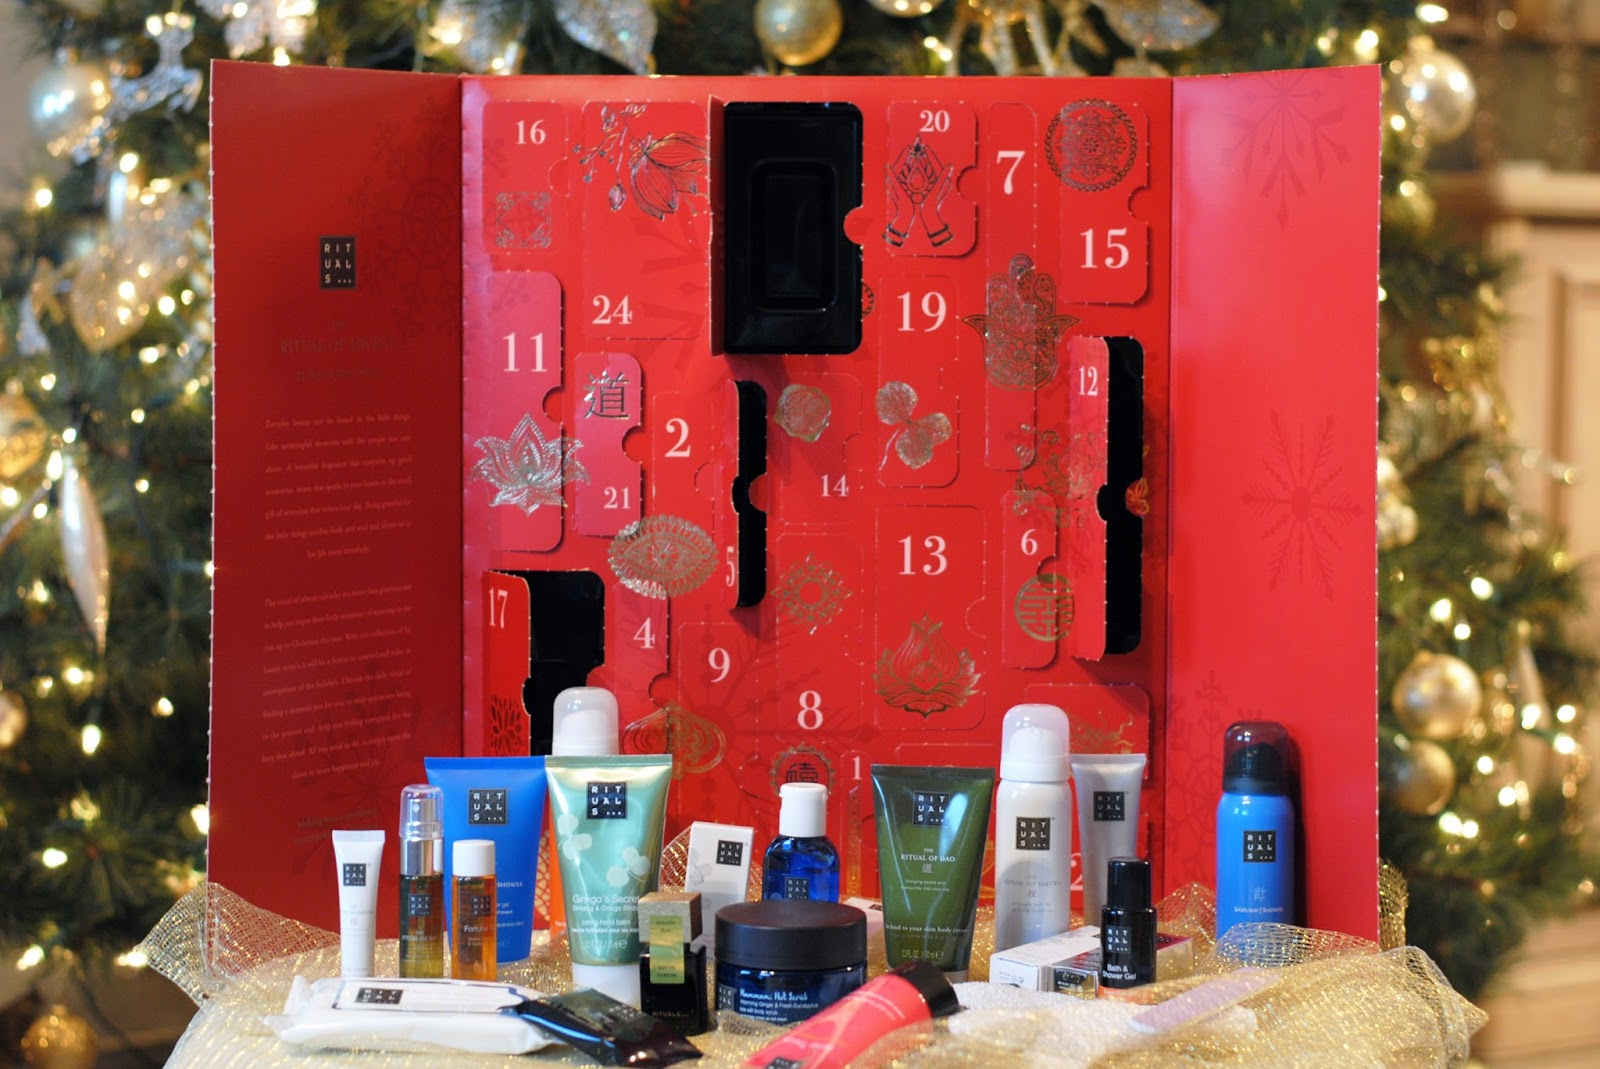 Adventskalender Rituals I Am A Fashioneer Rituals Advent Calendar 2016